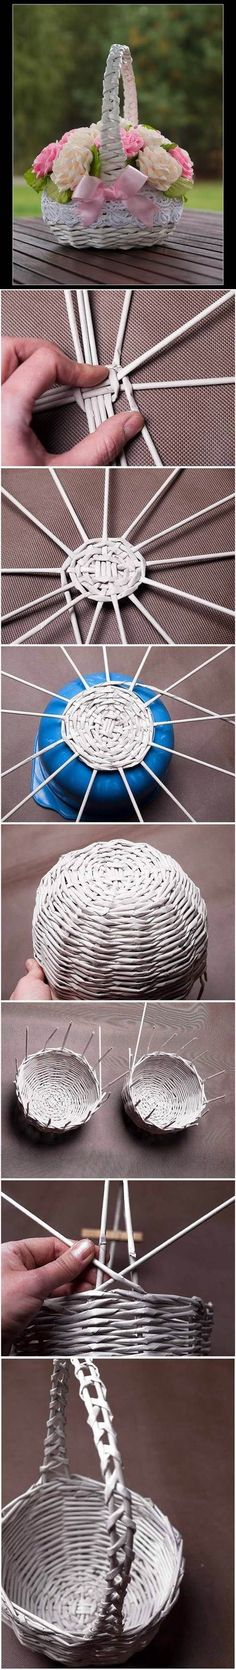 DIY Newspaper Tubes Weaving Basket 2